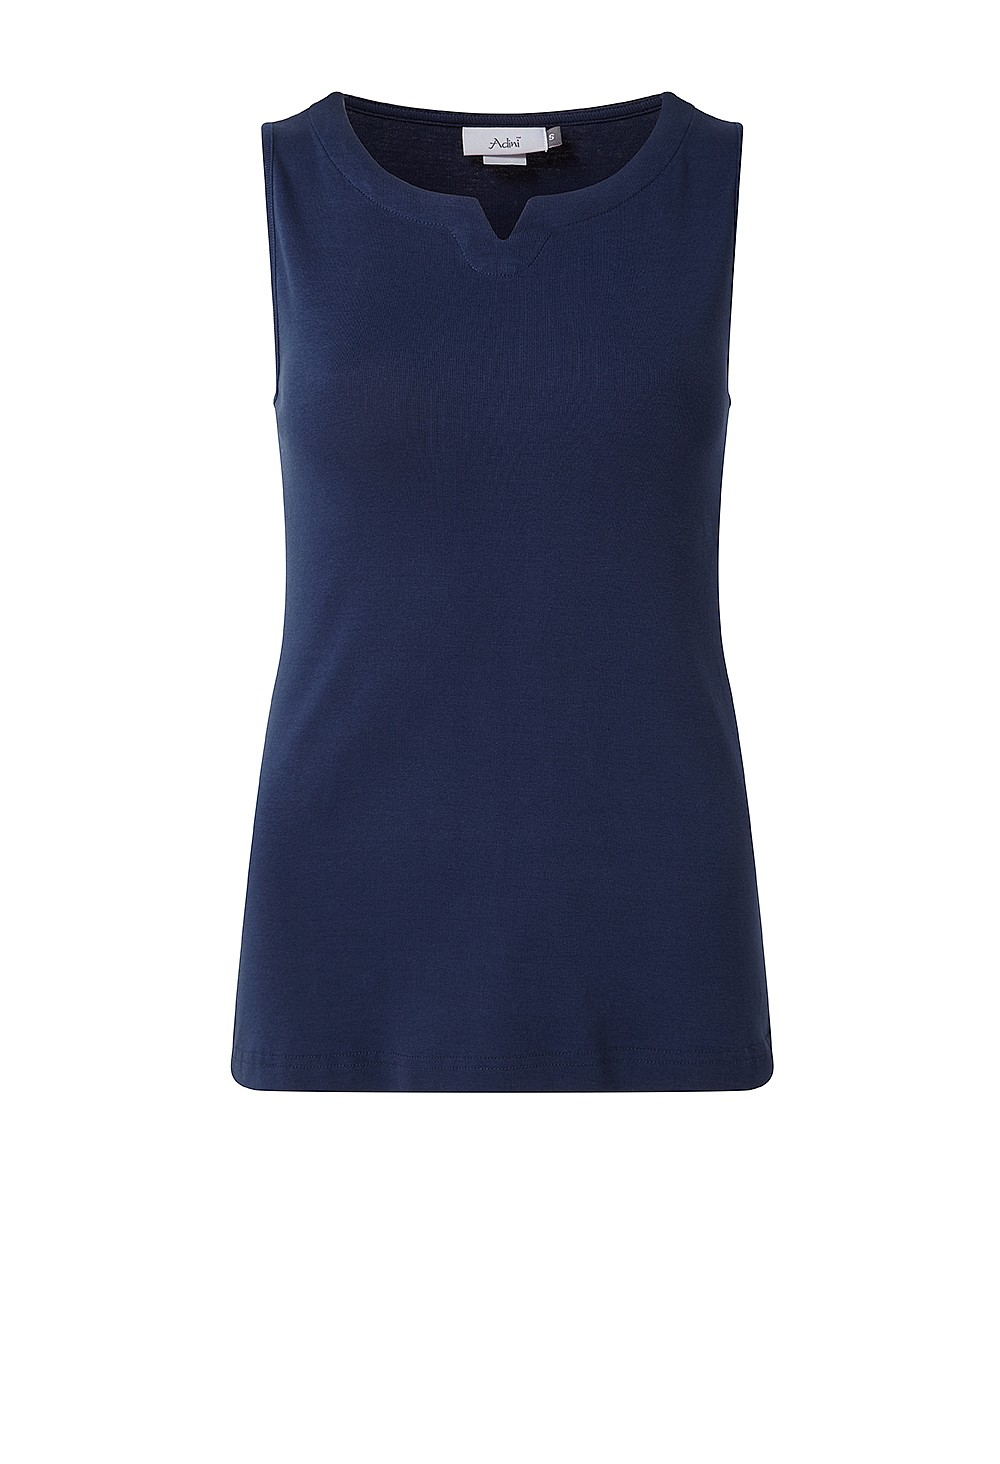 Adini sleeveless top